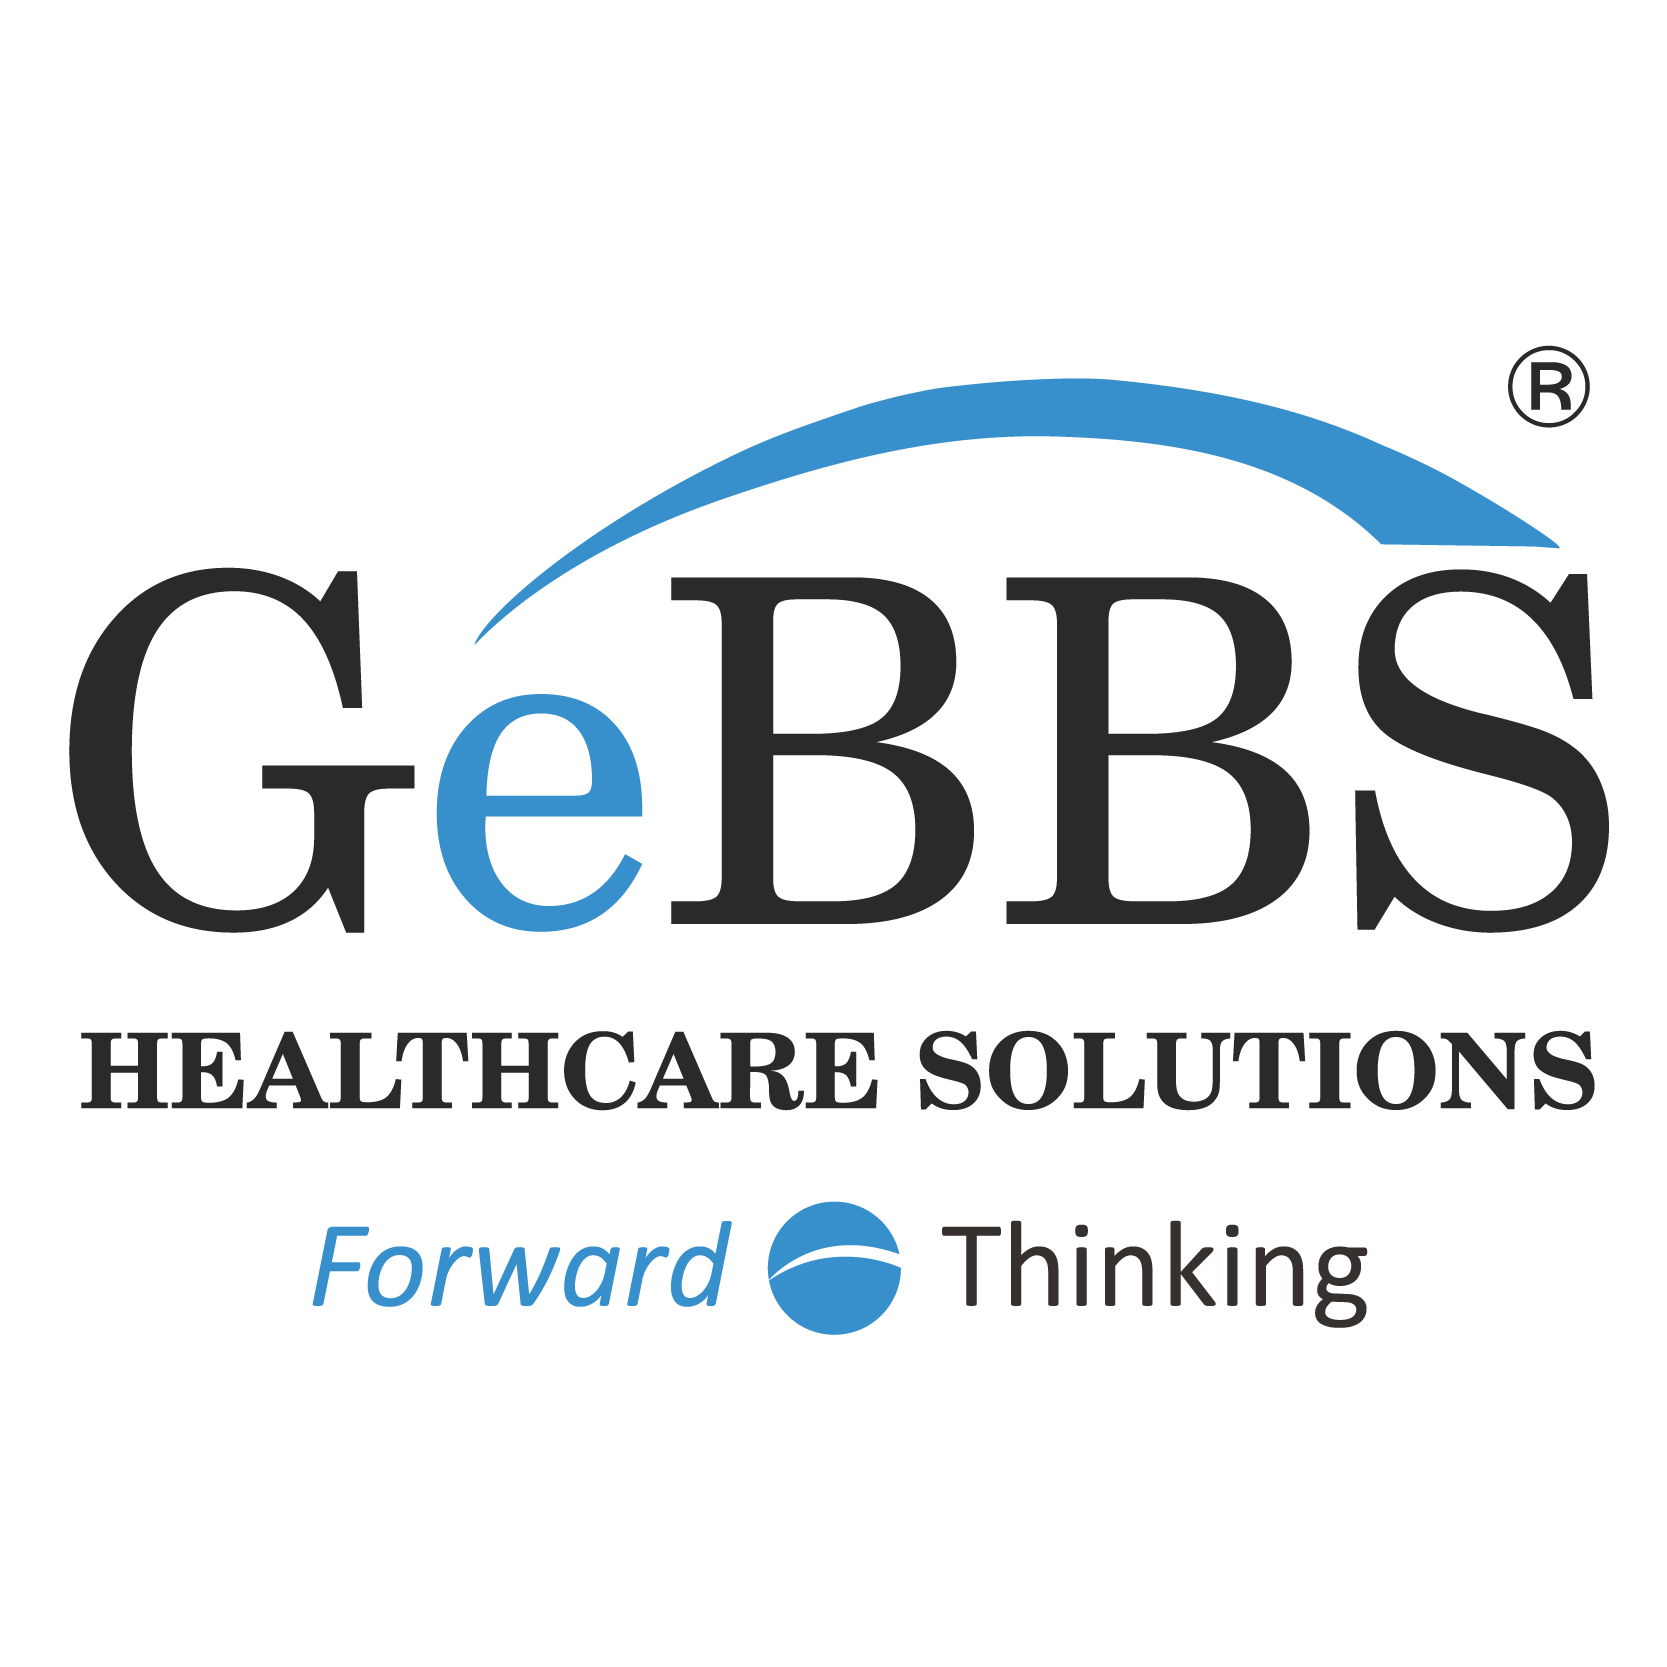 GeBBS Healthcare Solutions